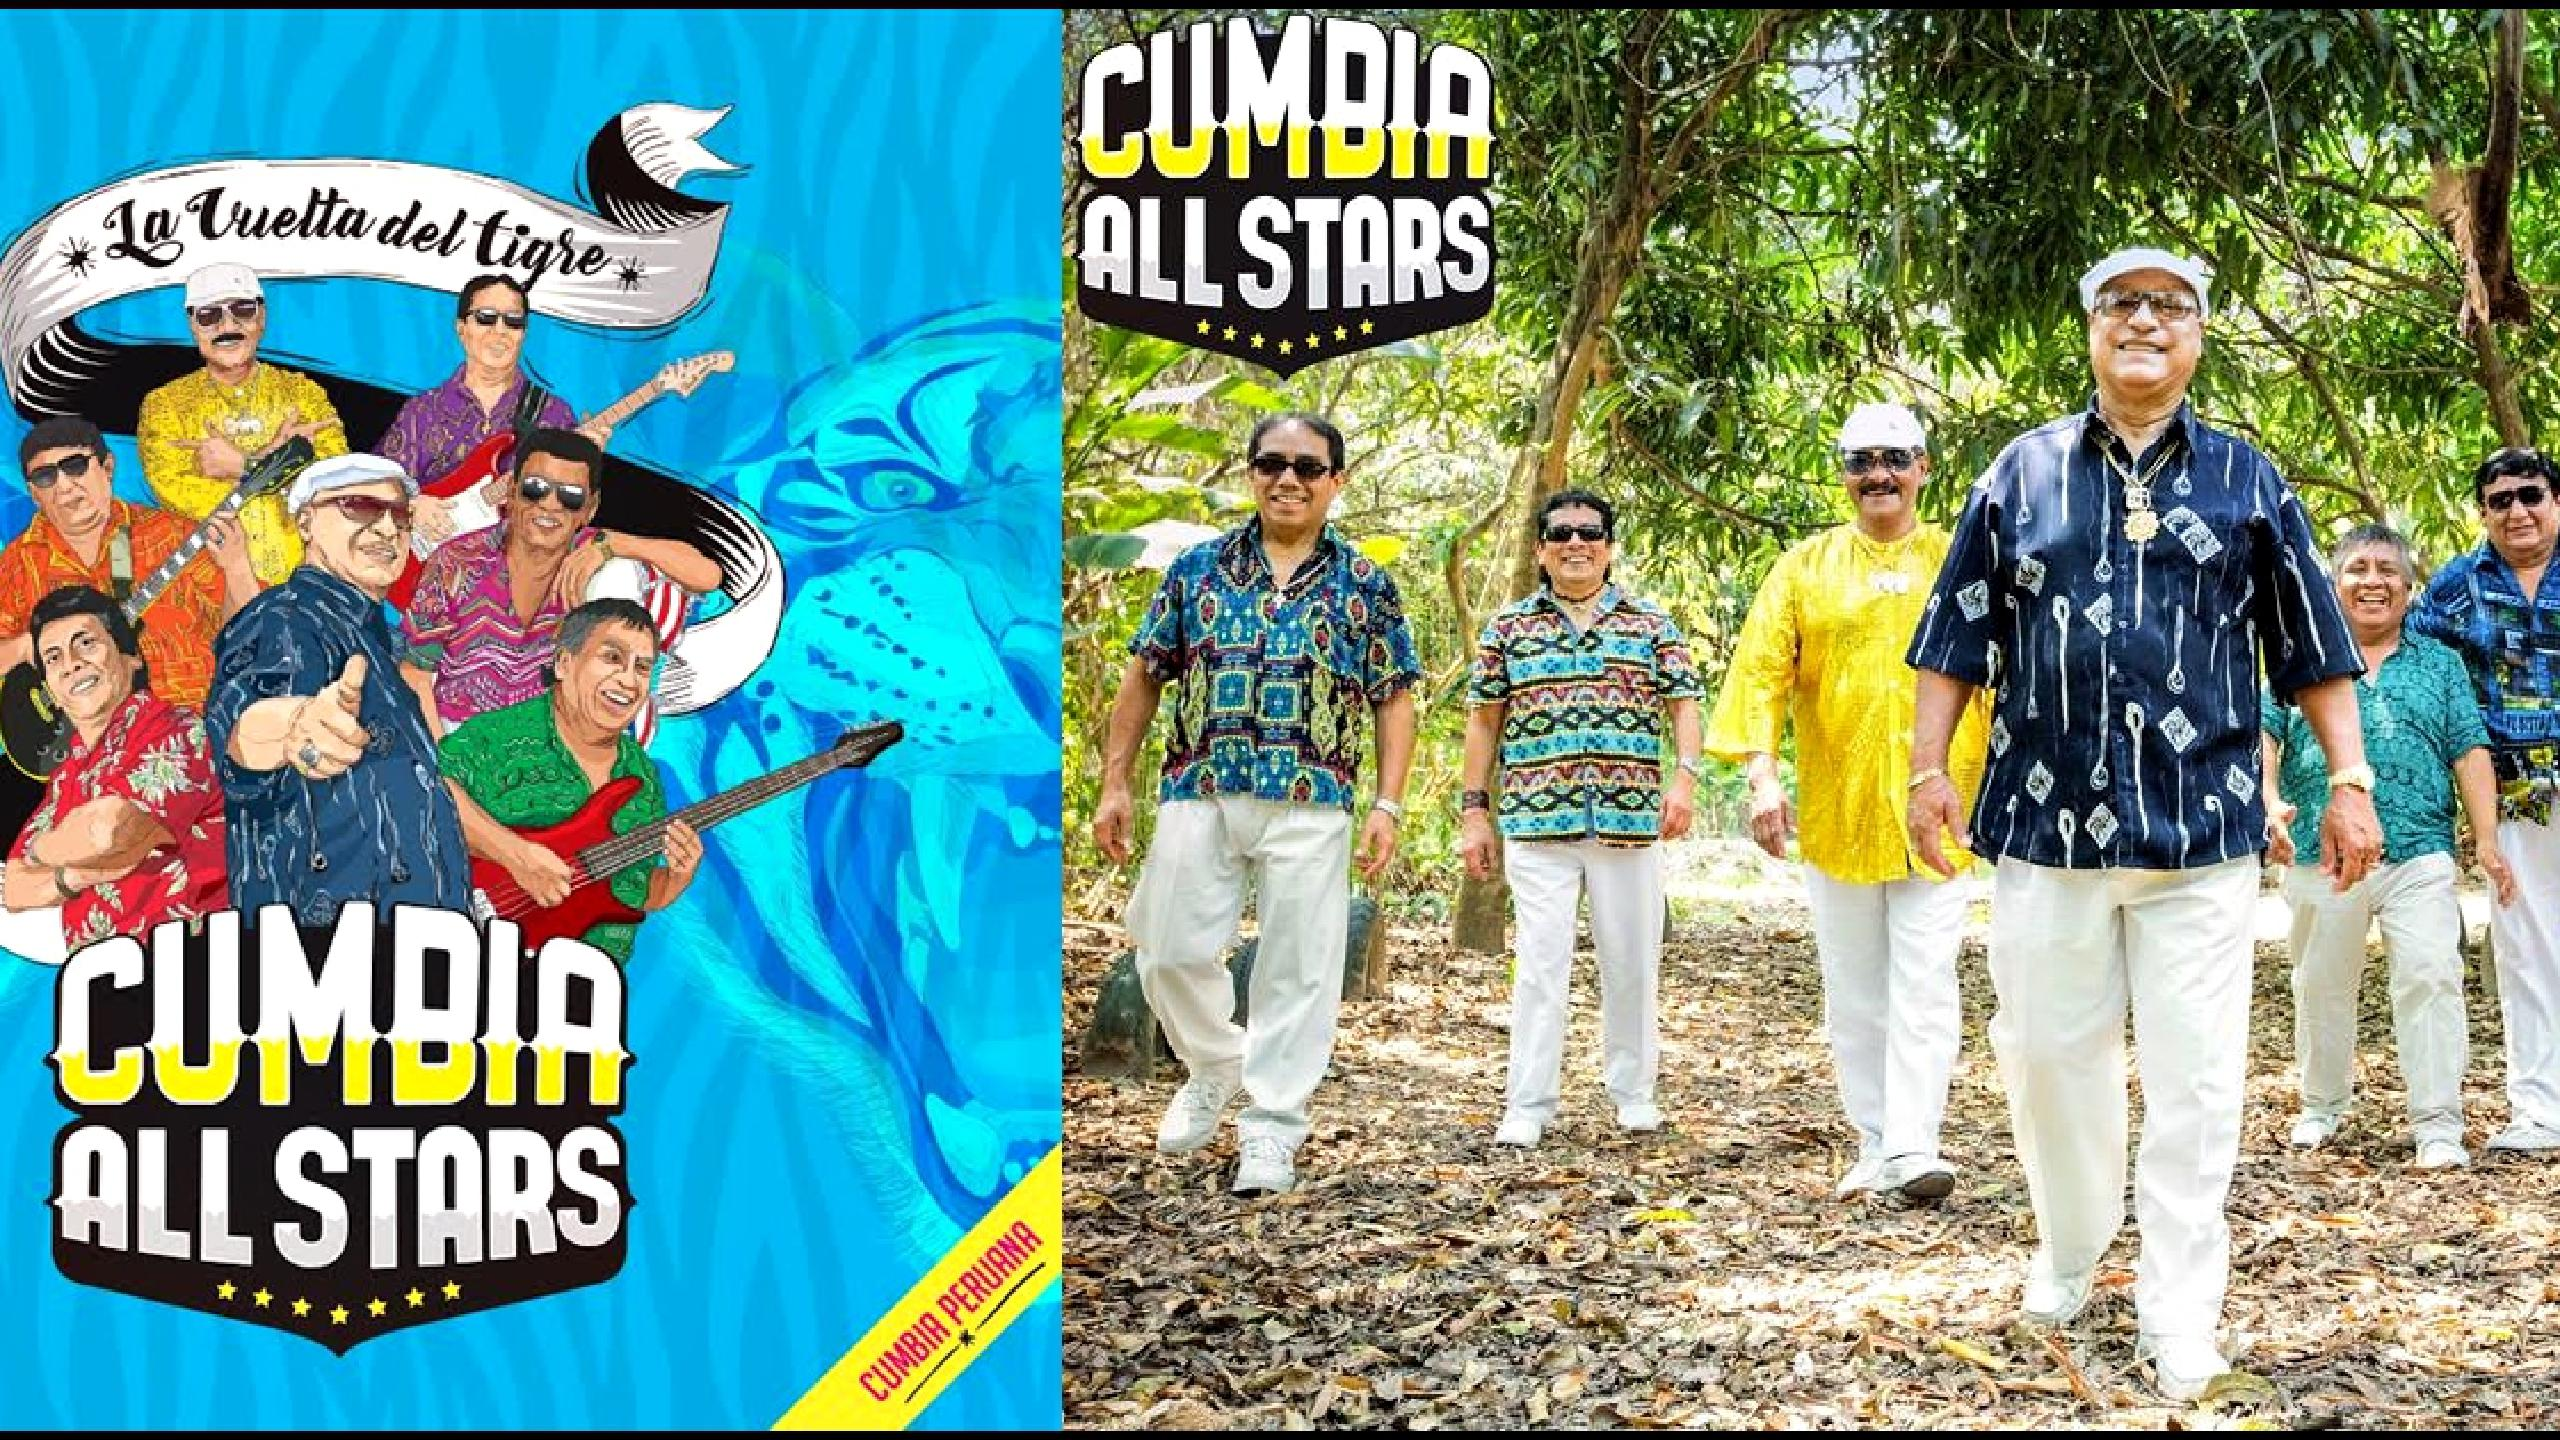 Cumbia All Stars concert tickets for Sala Caracol, Madrid Monday, 8